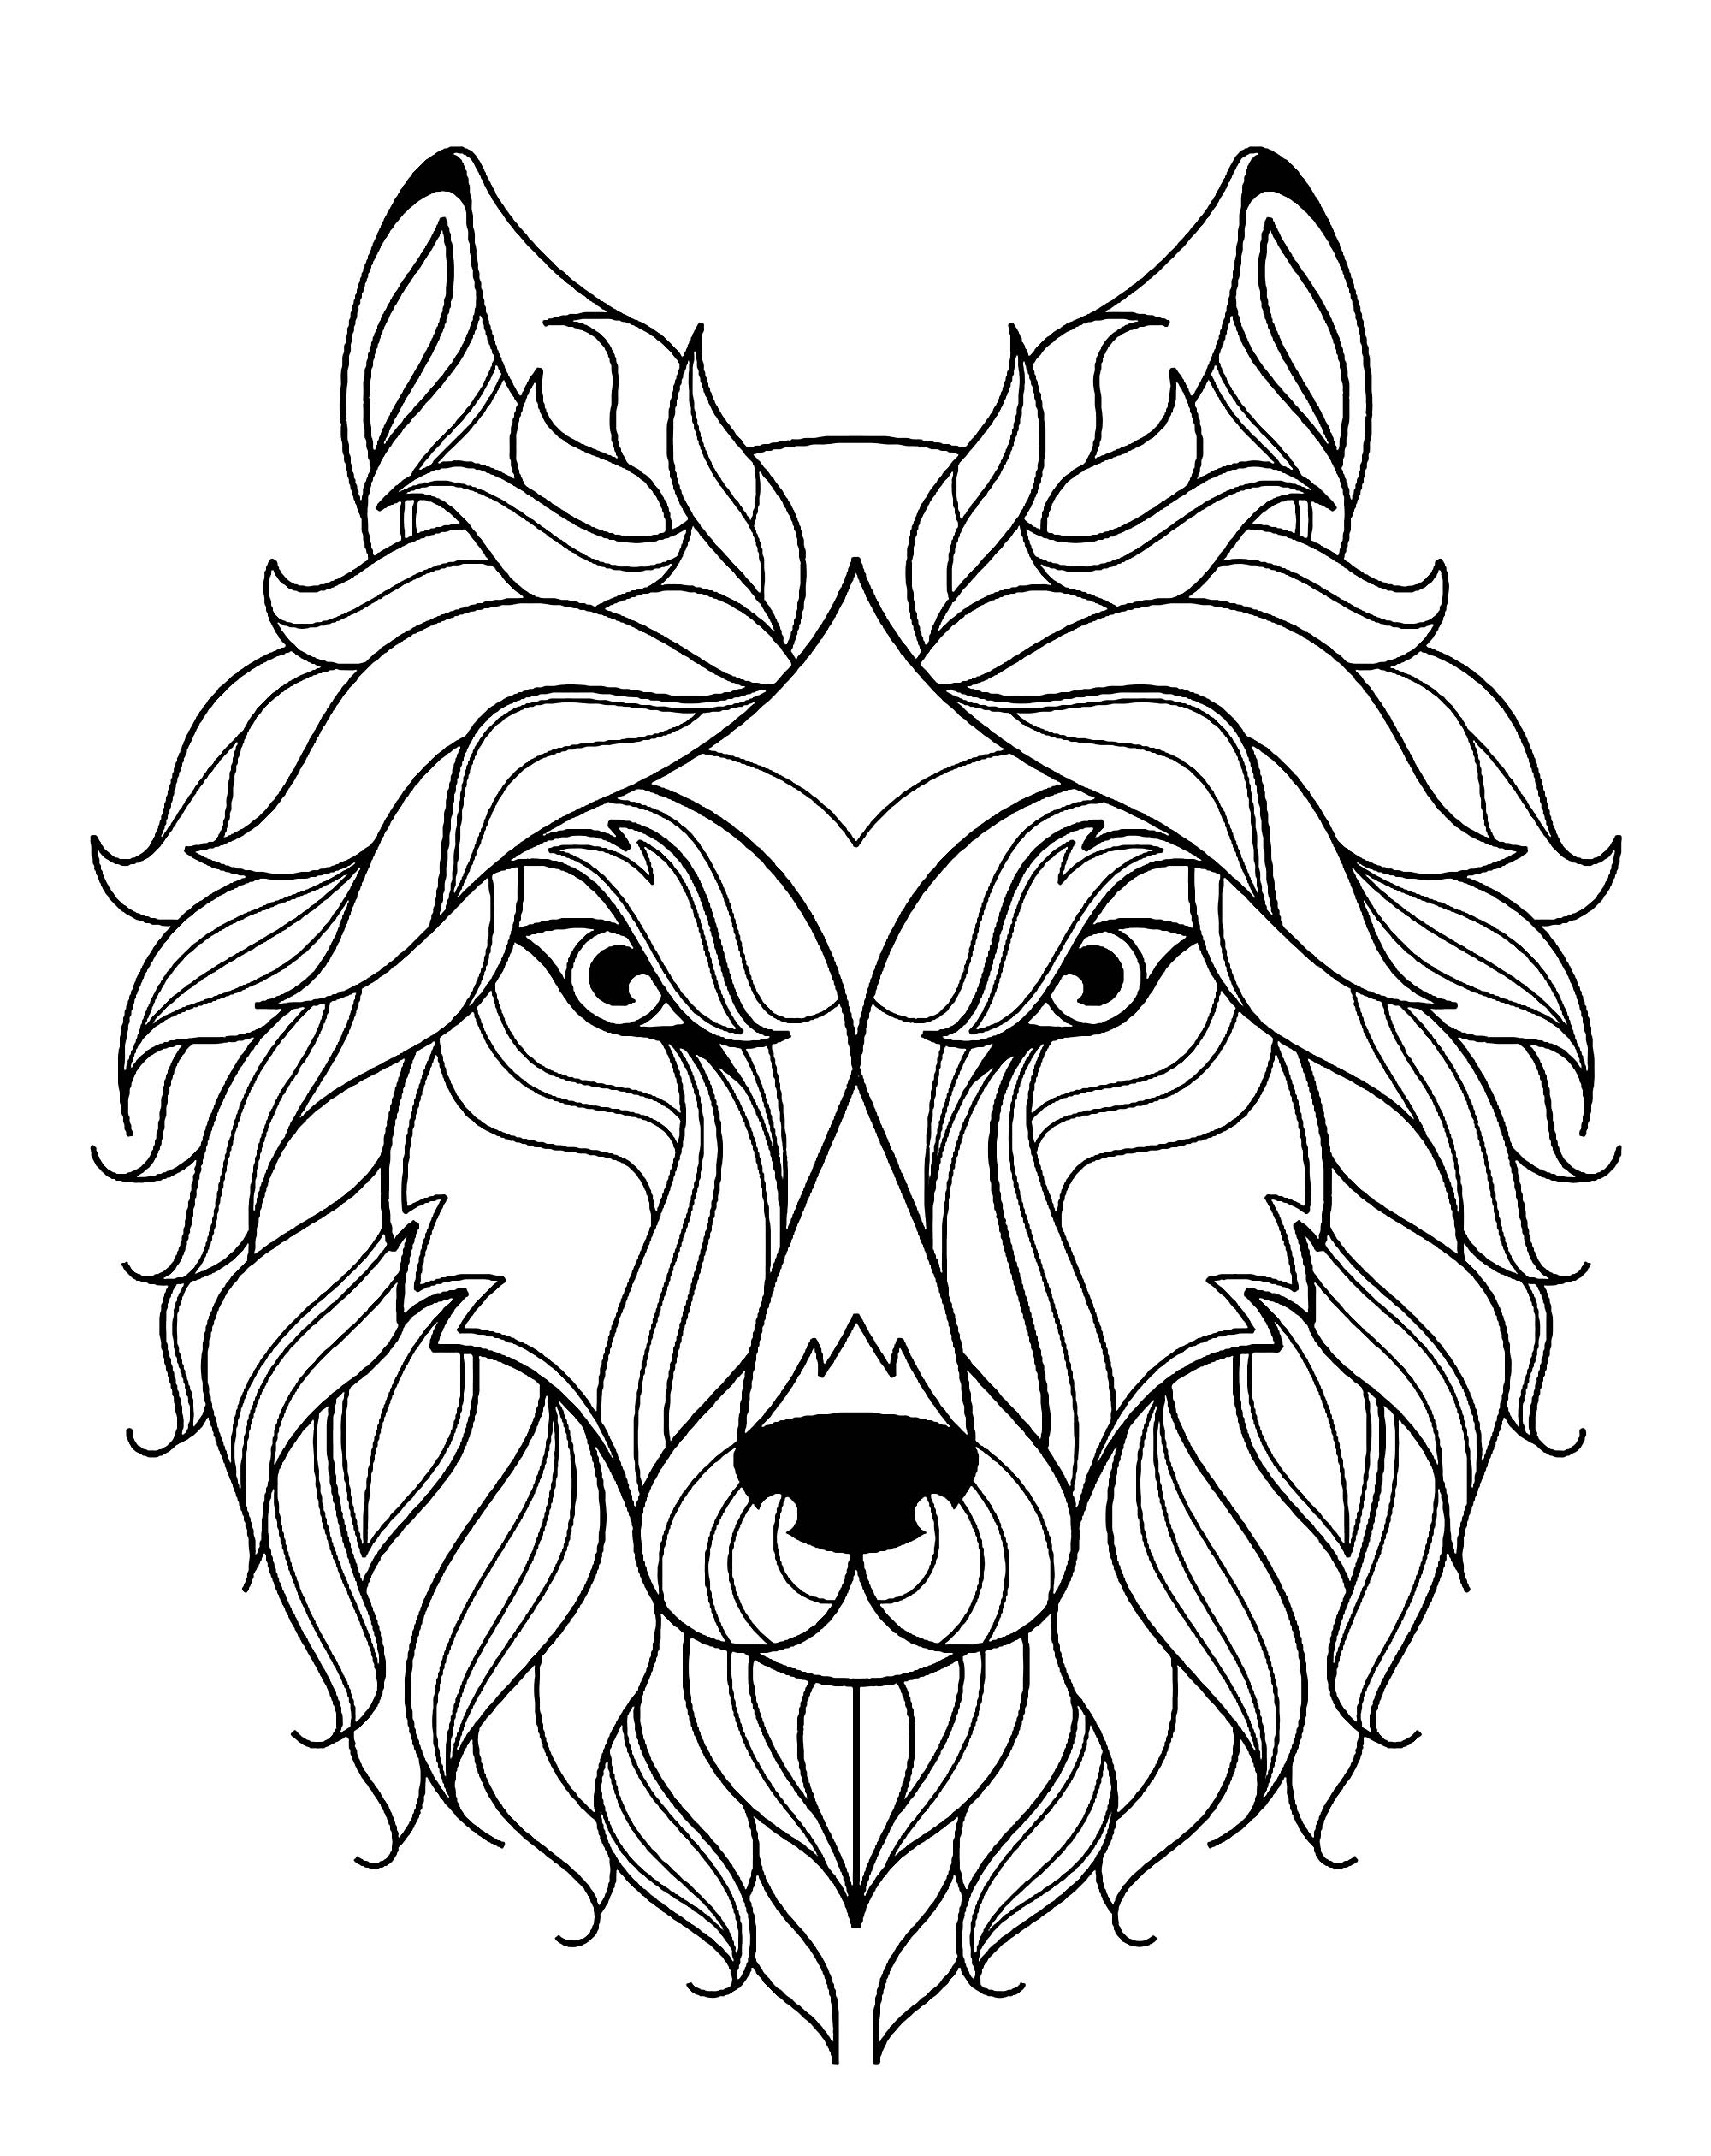 free animal coloring pages for kids free printable funny coloring pages for kids coloring free pages animal kids for